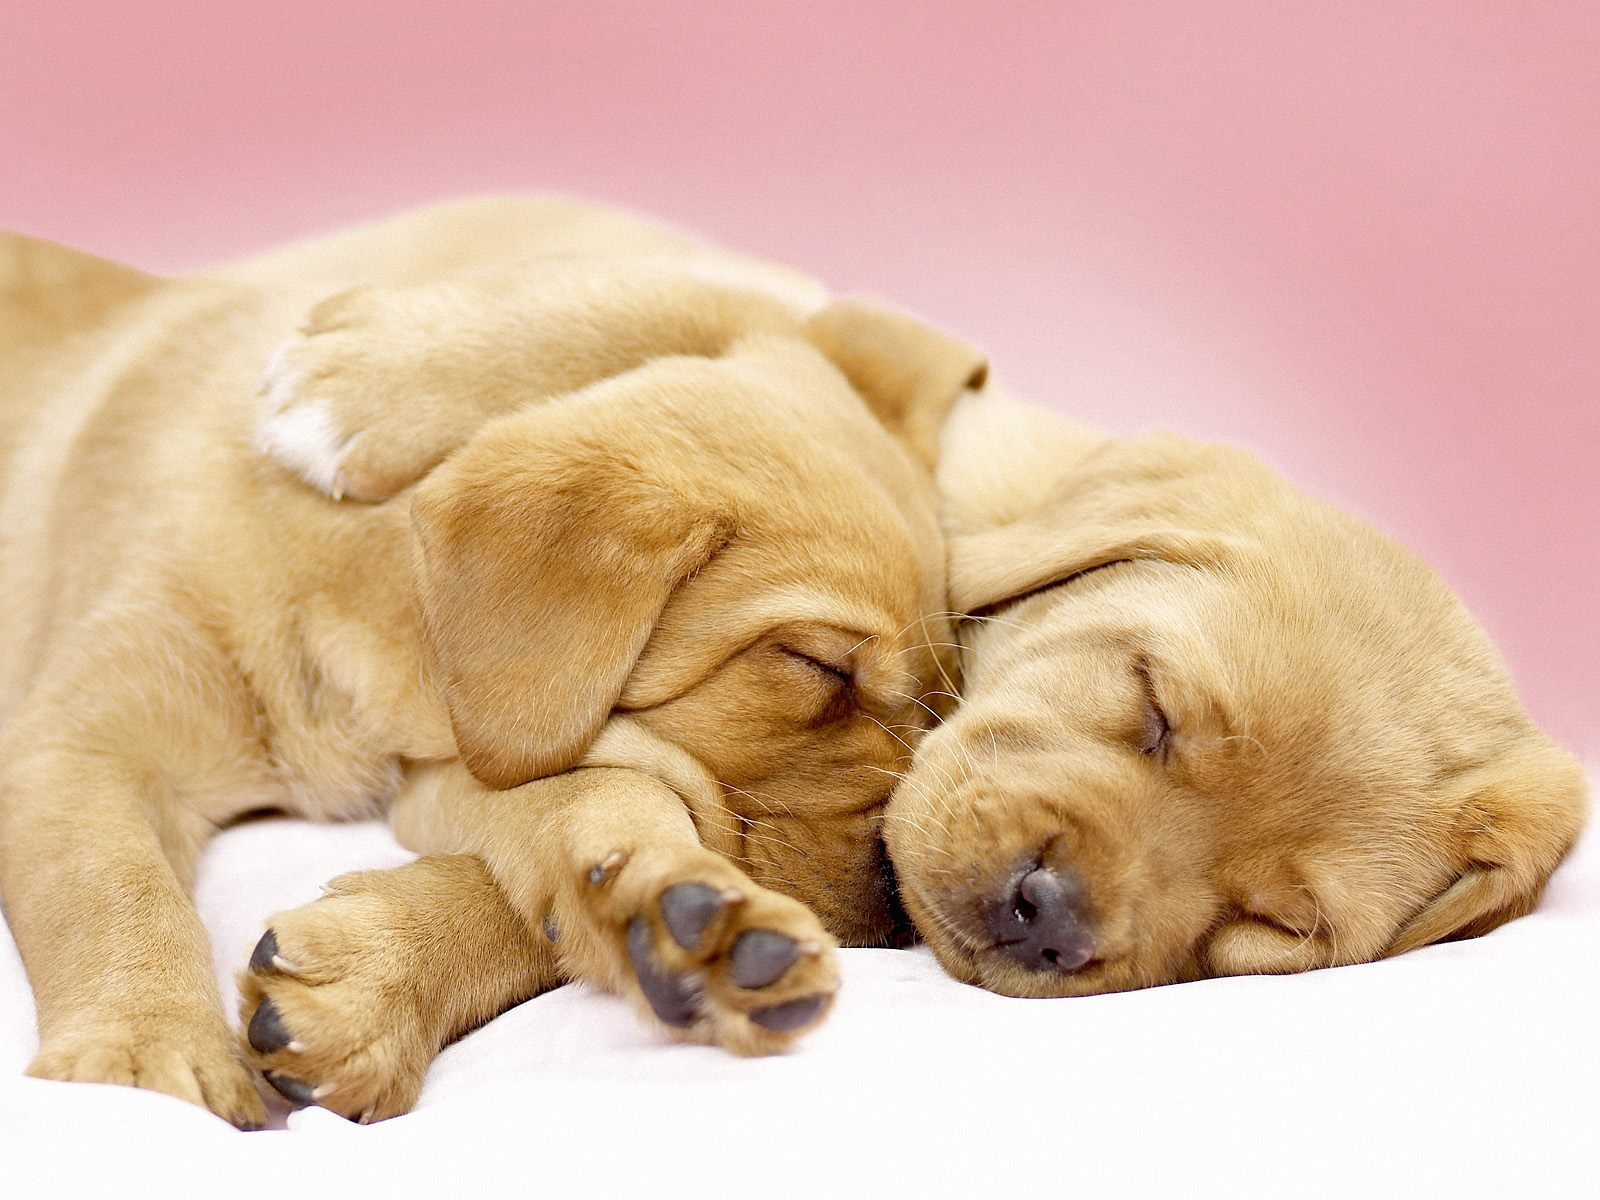 Sleep Together Dog Wallpapers Backgrounds | Dogs ...